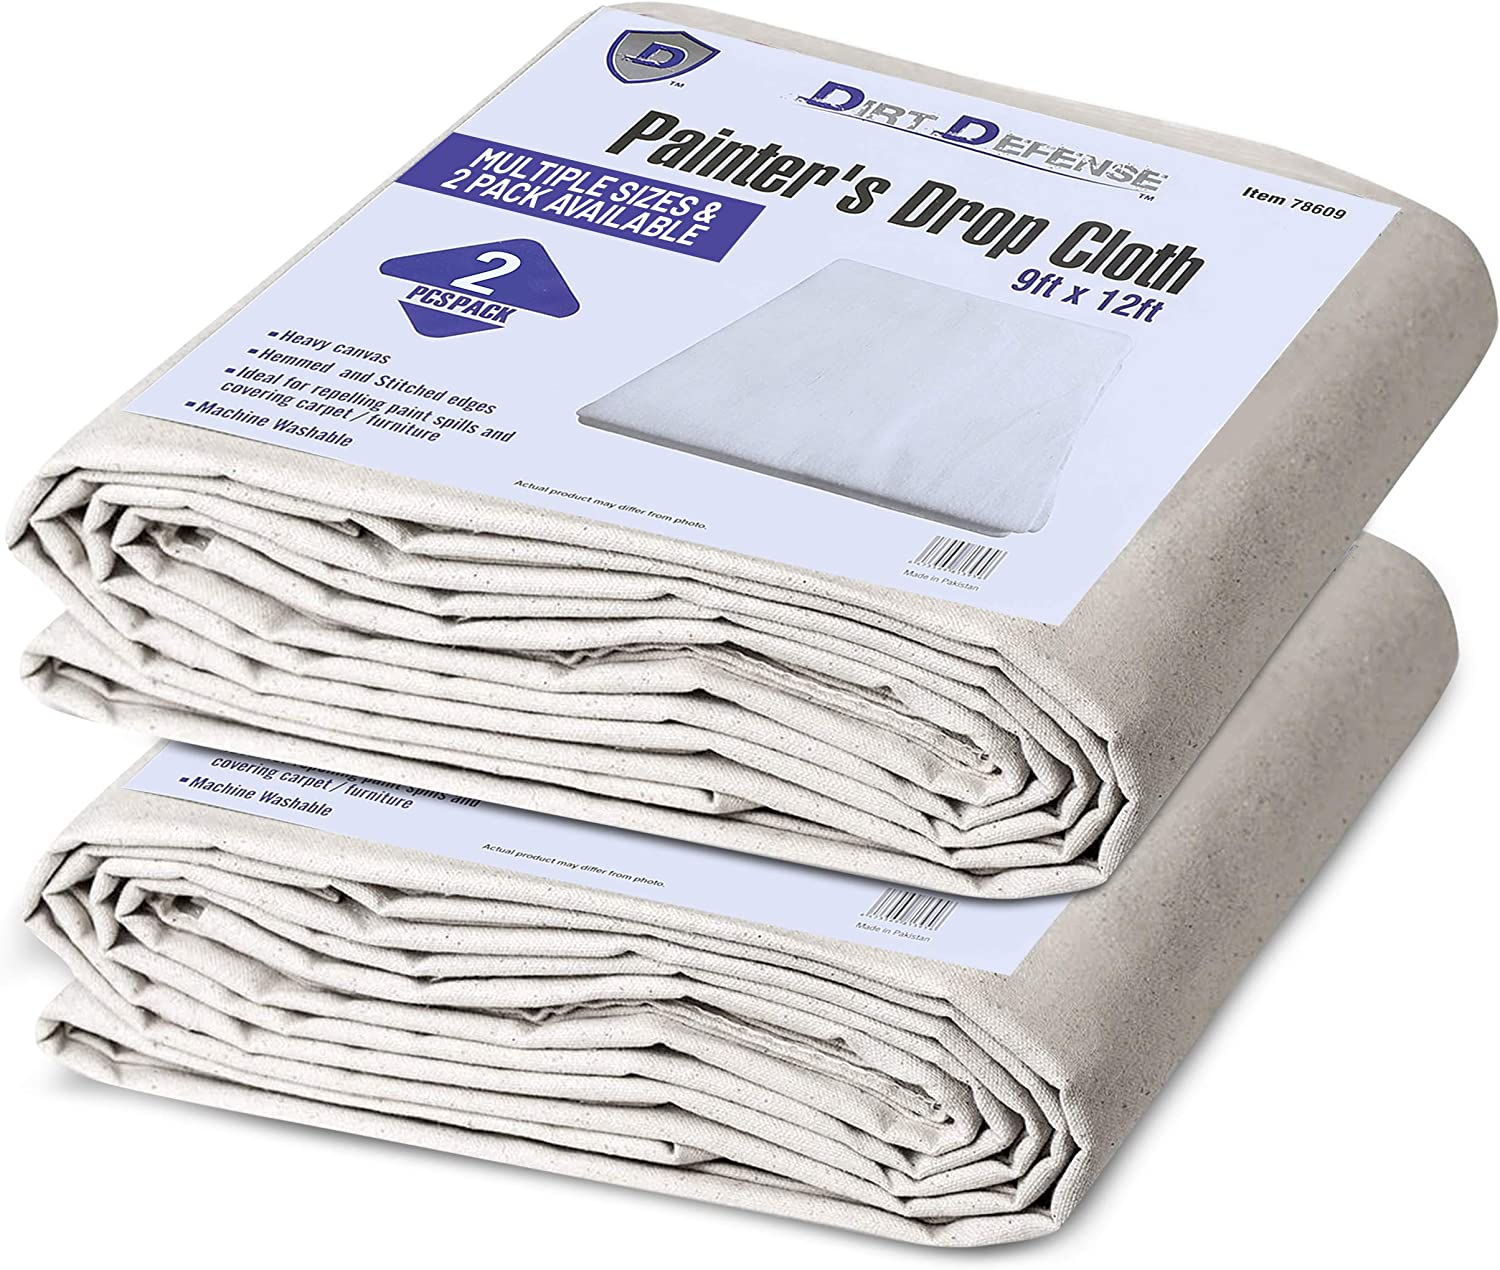 **Twin Pack** Plastic Backed 2 X Economy Laminated Cotton Dust Sheet 12 x 9